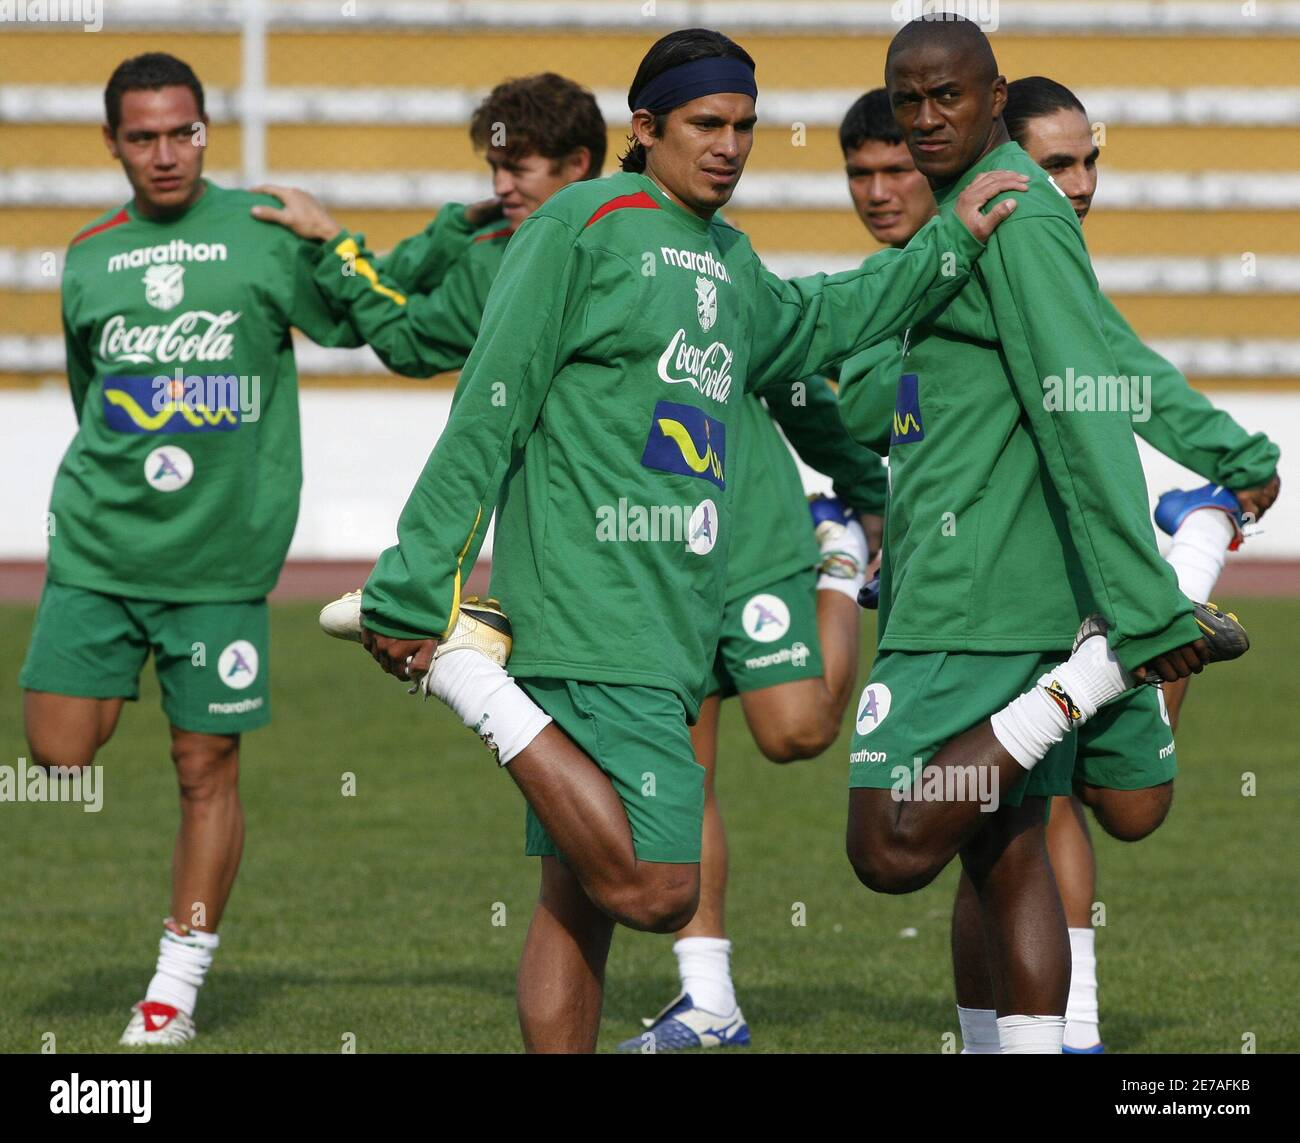 Bolivia's Gualberto Mojica, Muiguel Hoyos, Santos Amador, Nelson Sosa, Augusto Andaverris and Ronald Gutierrez (L-R) stretch during a training session in La Paz October 1, 2007. Bolivia will face Uruguay next October 13 in Montevideo for a qualifying match for the World Cup South Africa 2010.    REUTERS/David Mercado   (BOLIVIA) Stock Photo